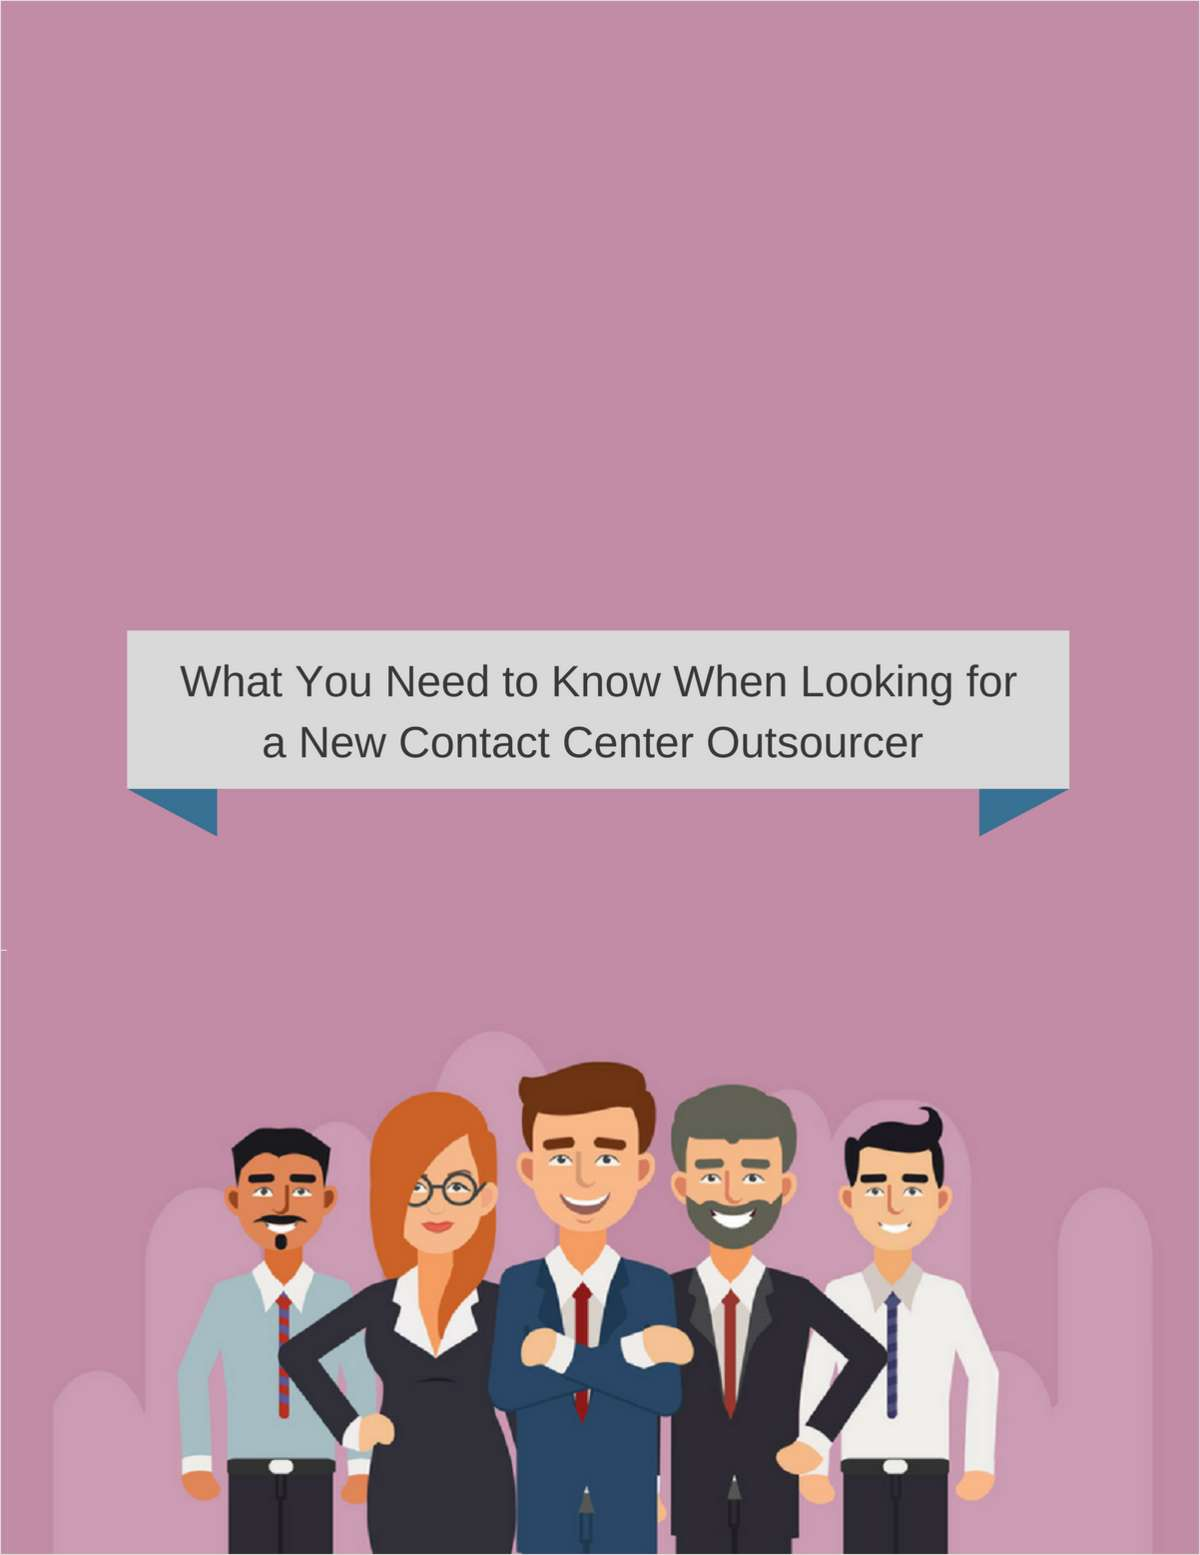 What You Need to Know When Looking for a New Contact Center Outsourcer